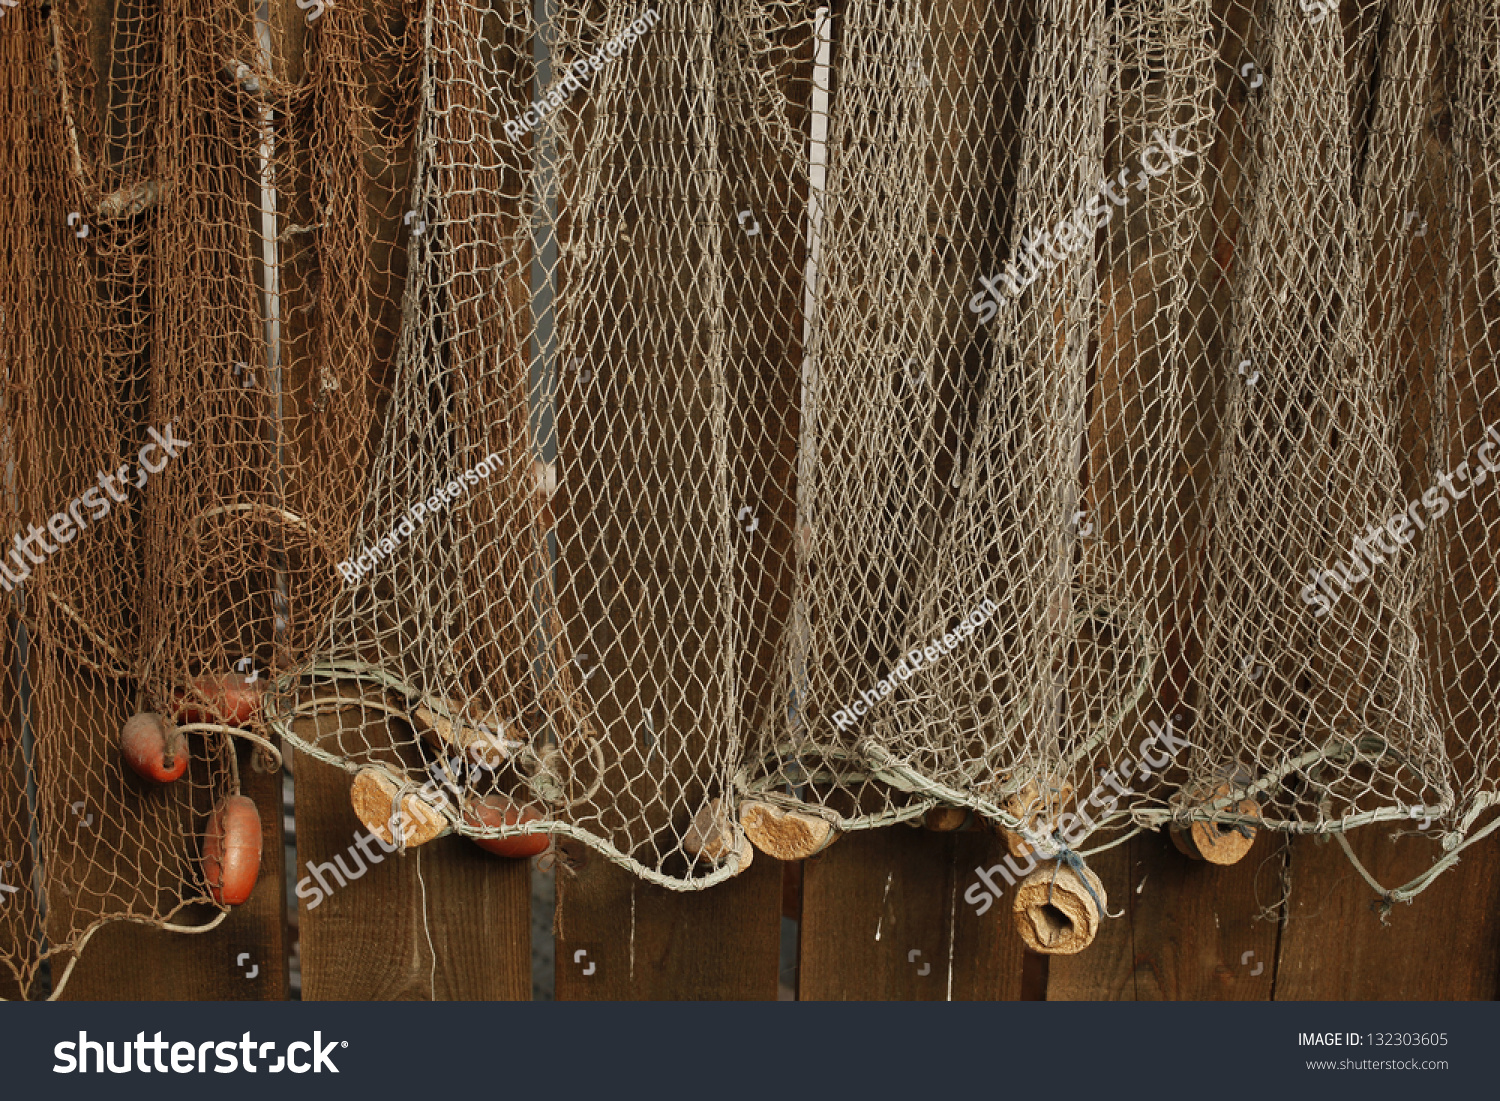 Fishing Net Is Hanging On The Wall Stock Photo 132303605